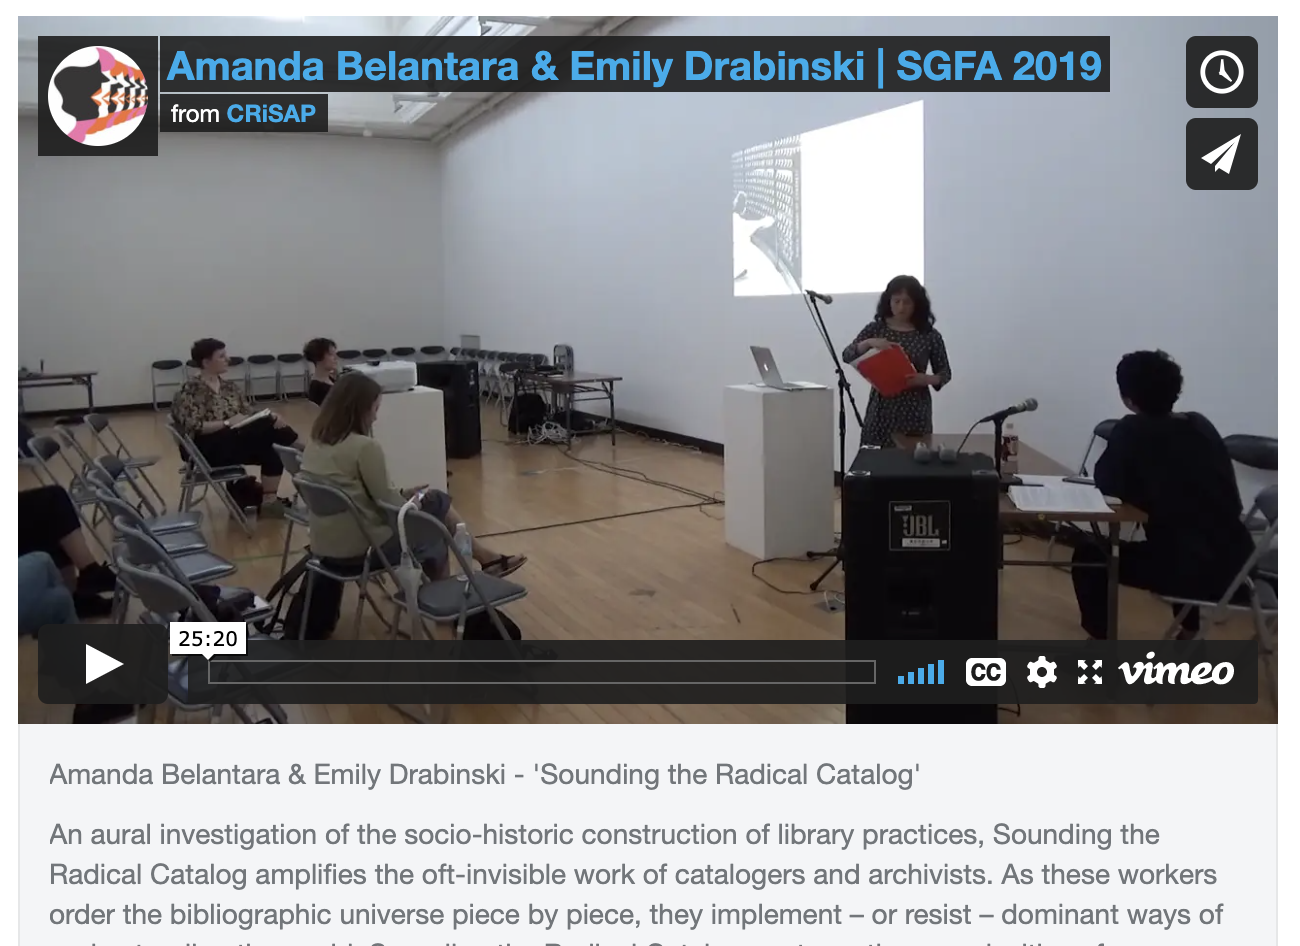 Vimeo screen shot of Amanda Belantara & Emily Drabinski - 'Sounding the Radical Catalog'